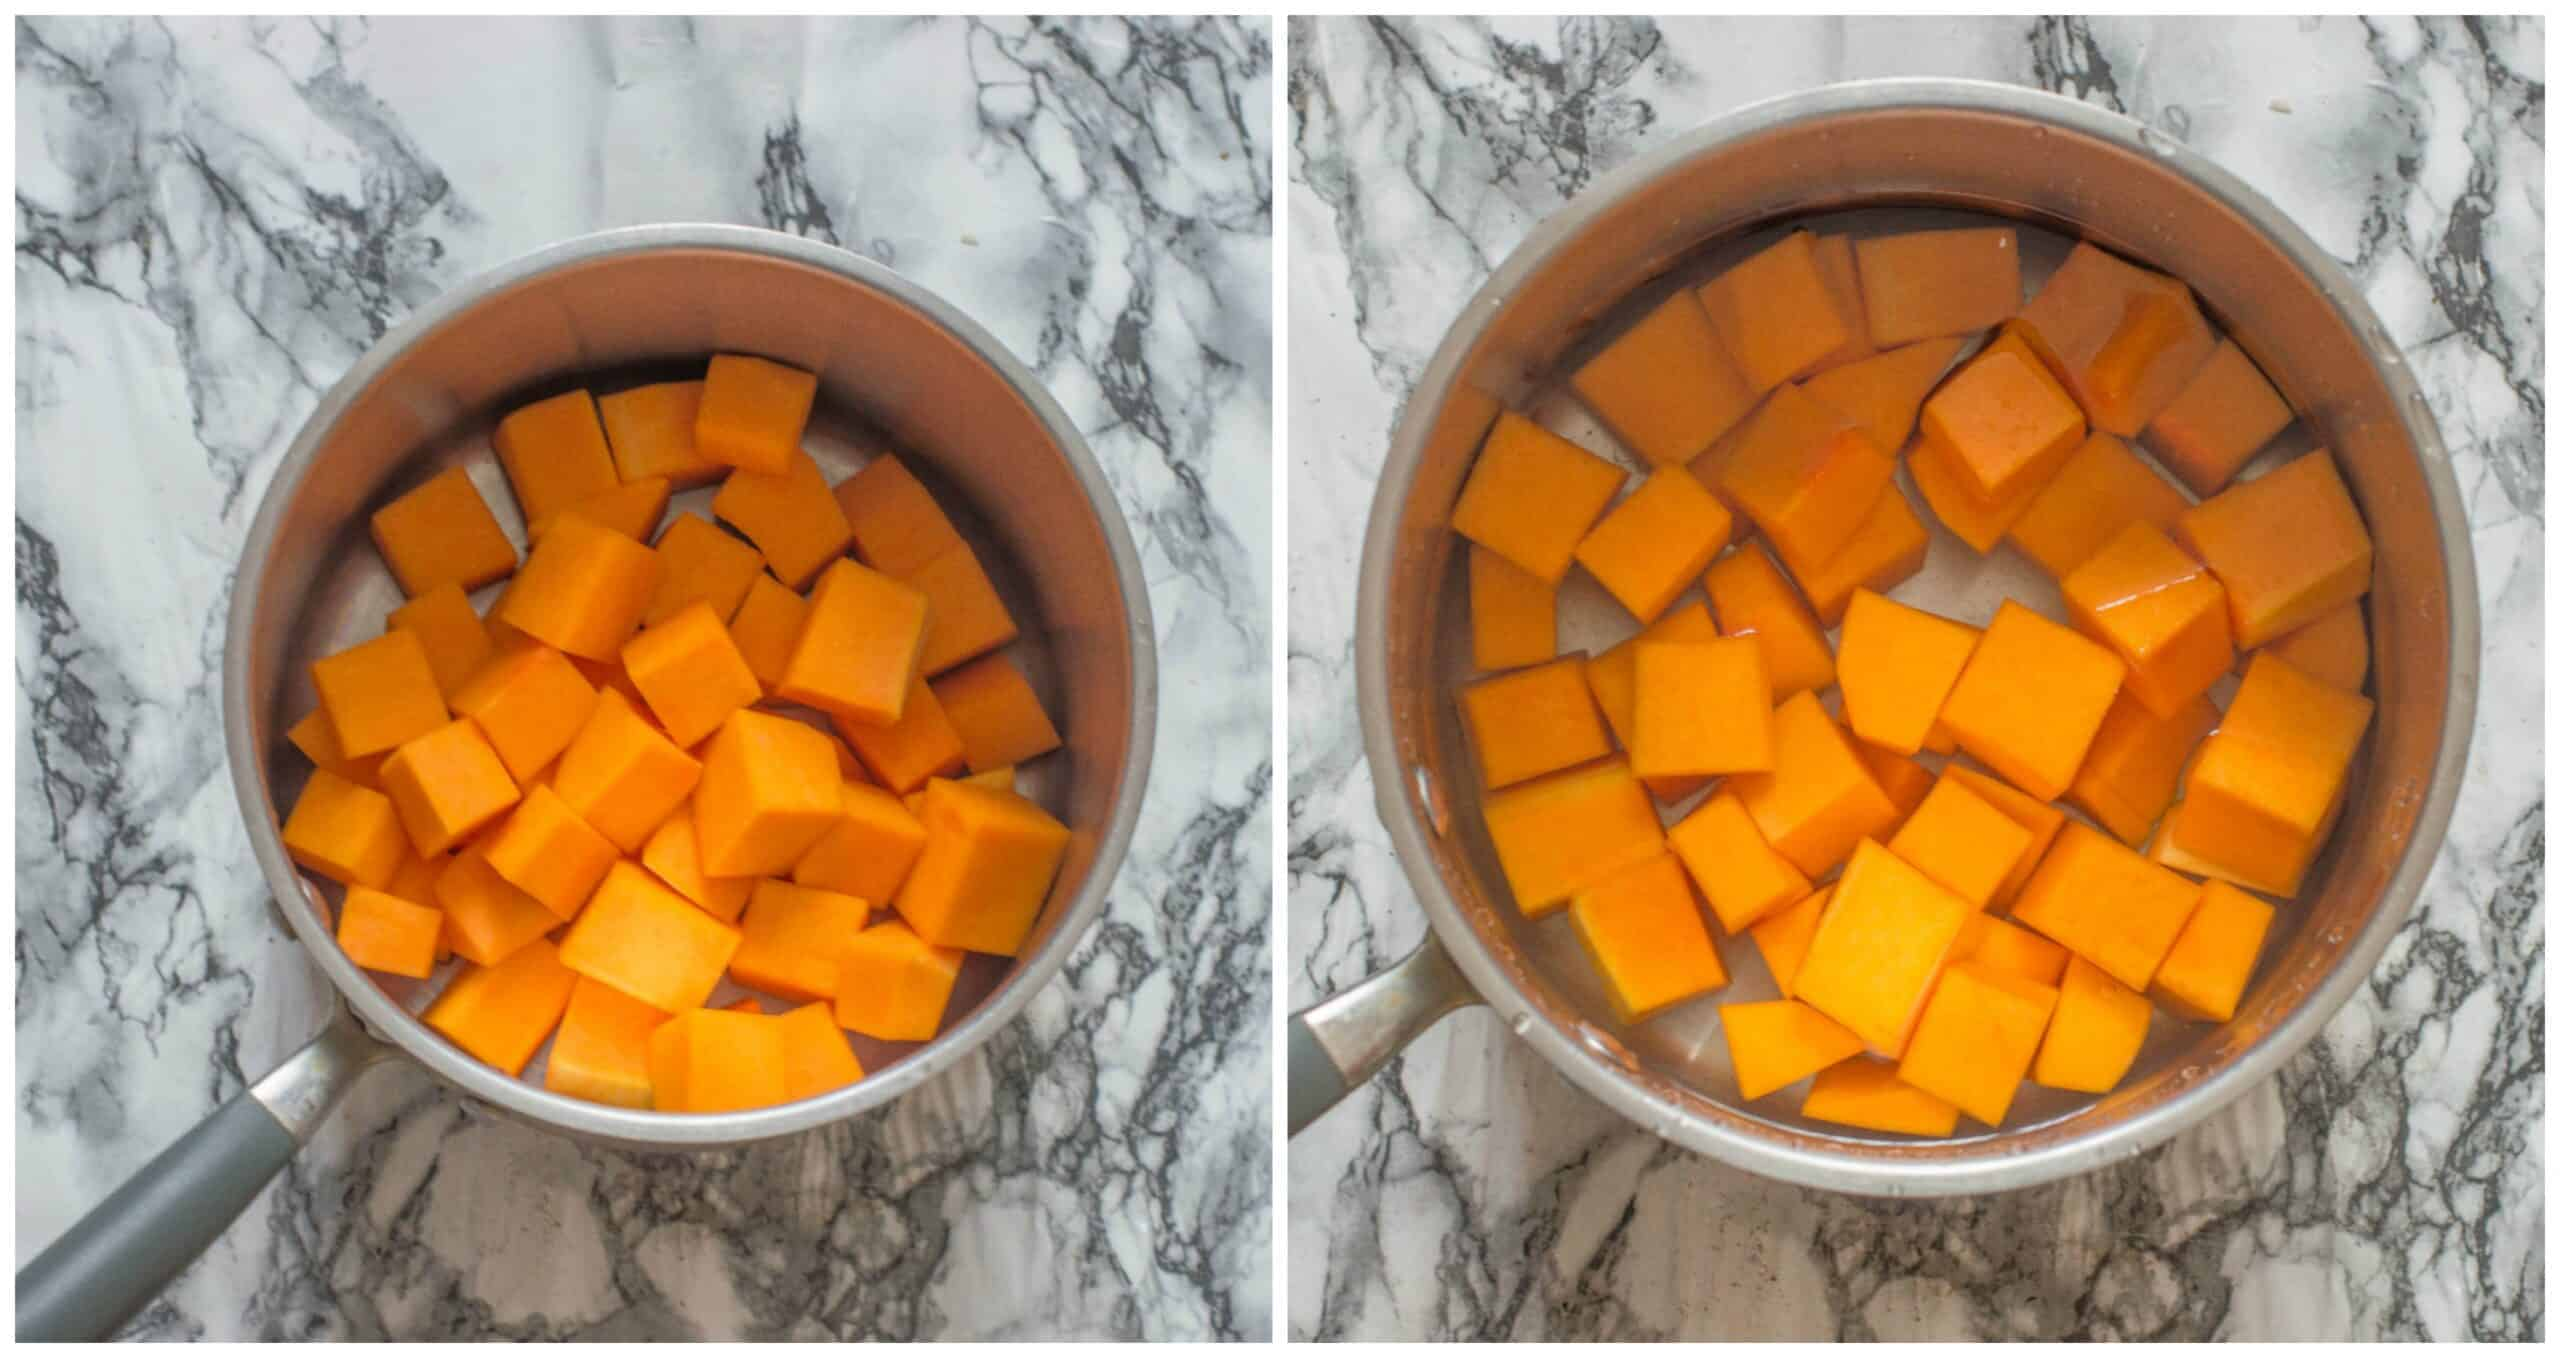 steps 1-2 boiling the sweet potatoes